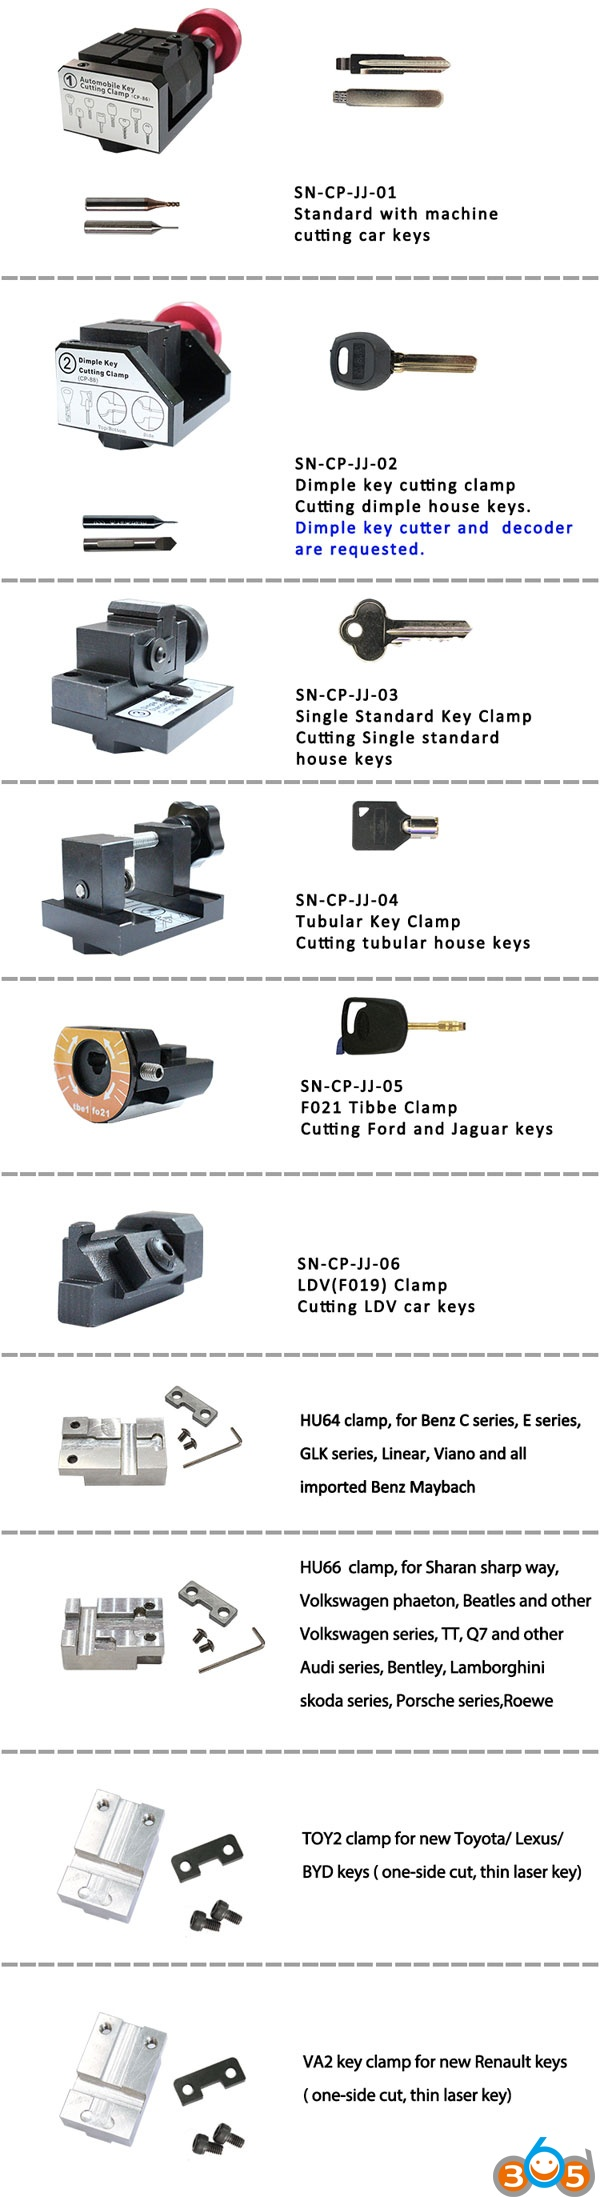 sec-e9-clamp-web